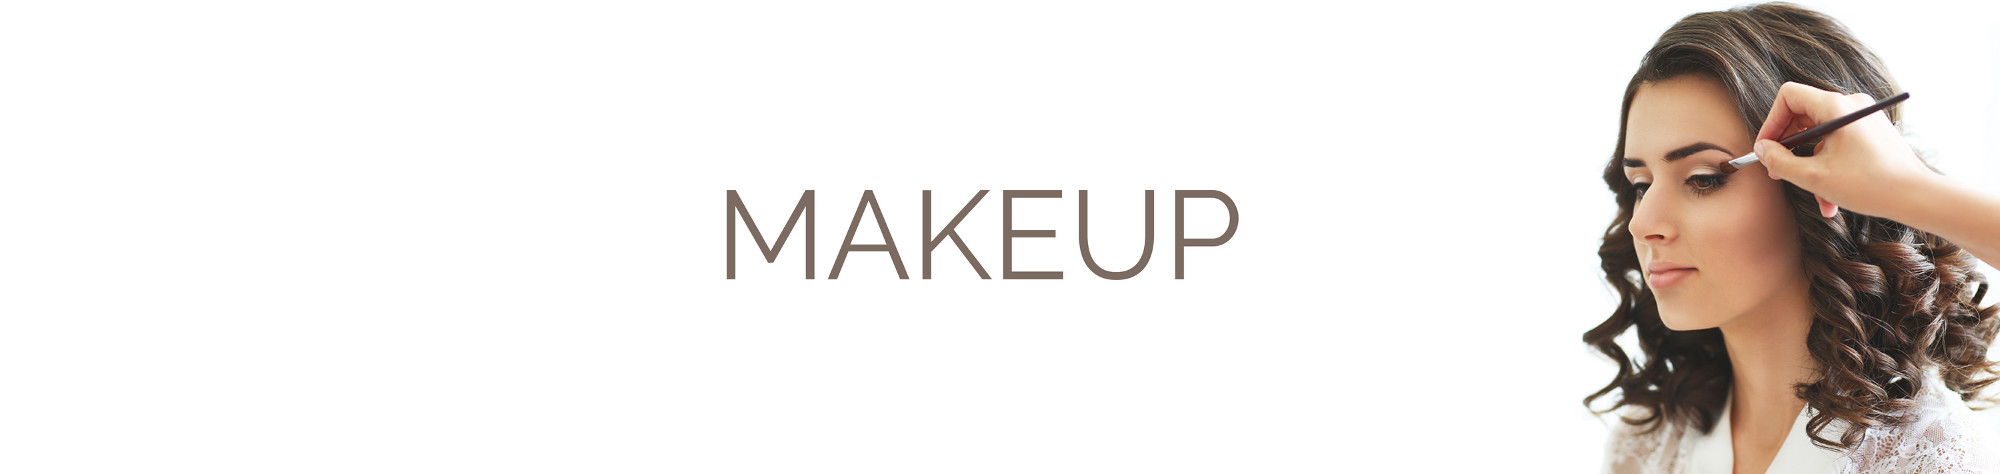 Makeup Treatments Banner